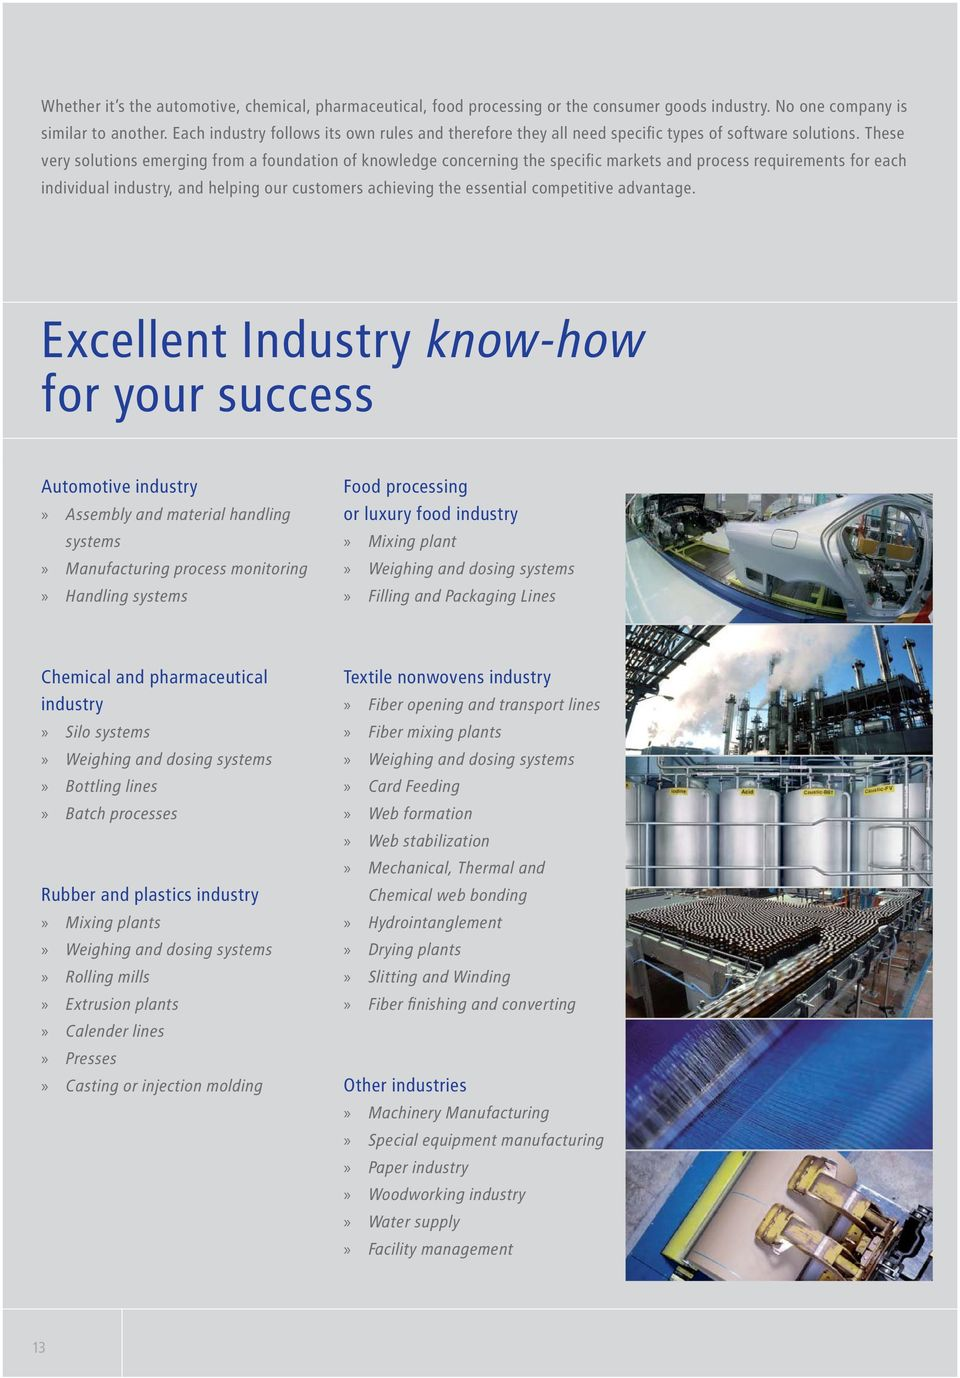 These very solutions emerging from a foundation of knowledge concerning the specific markets and process requirements for each individual industry, and helping our customers achieving the essential